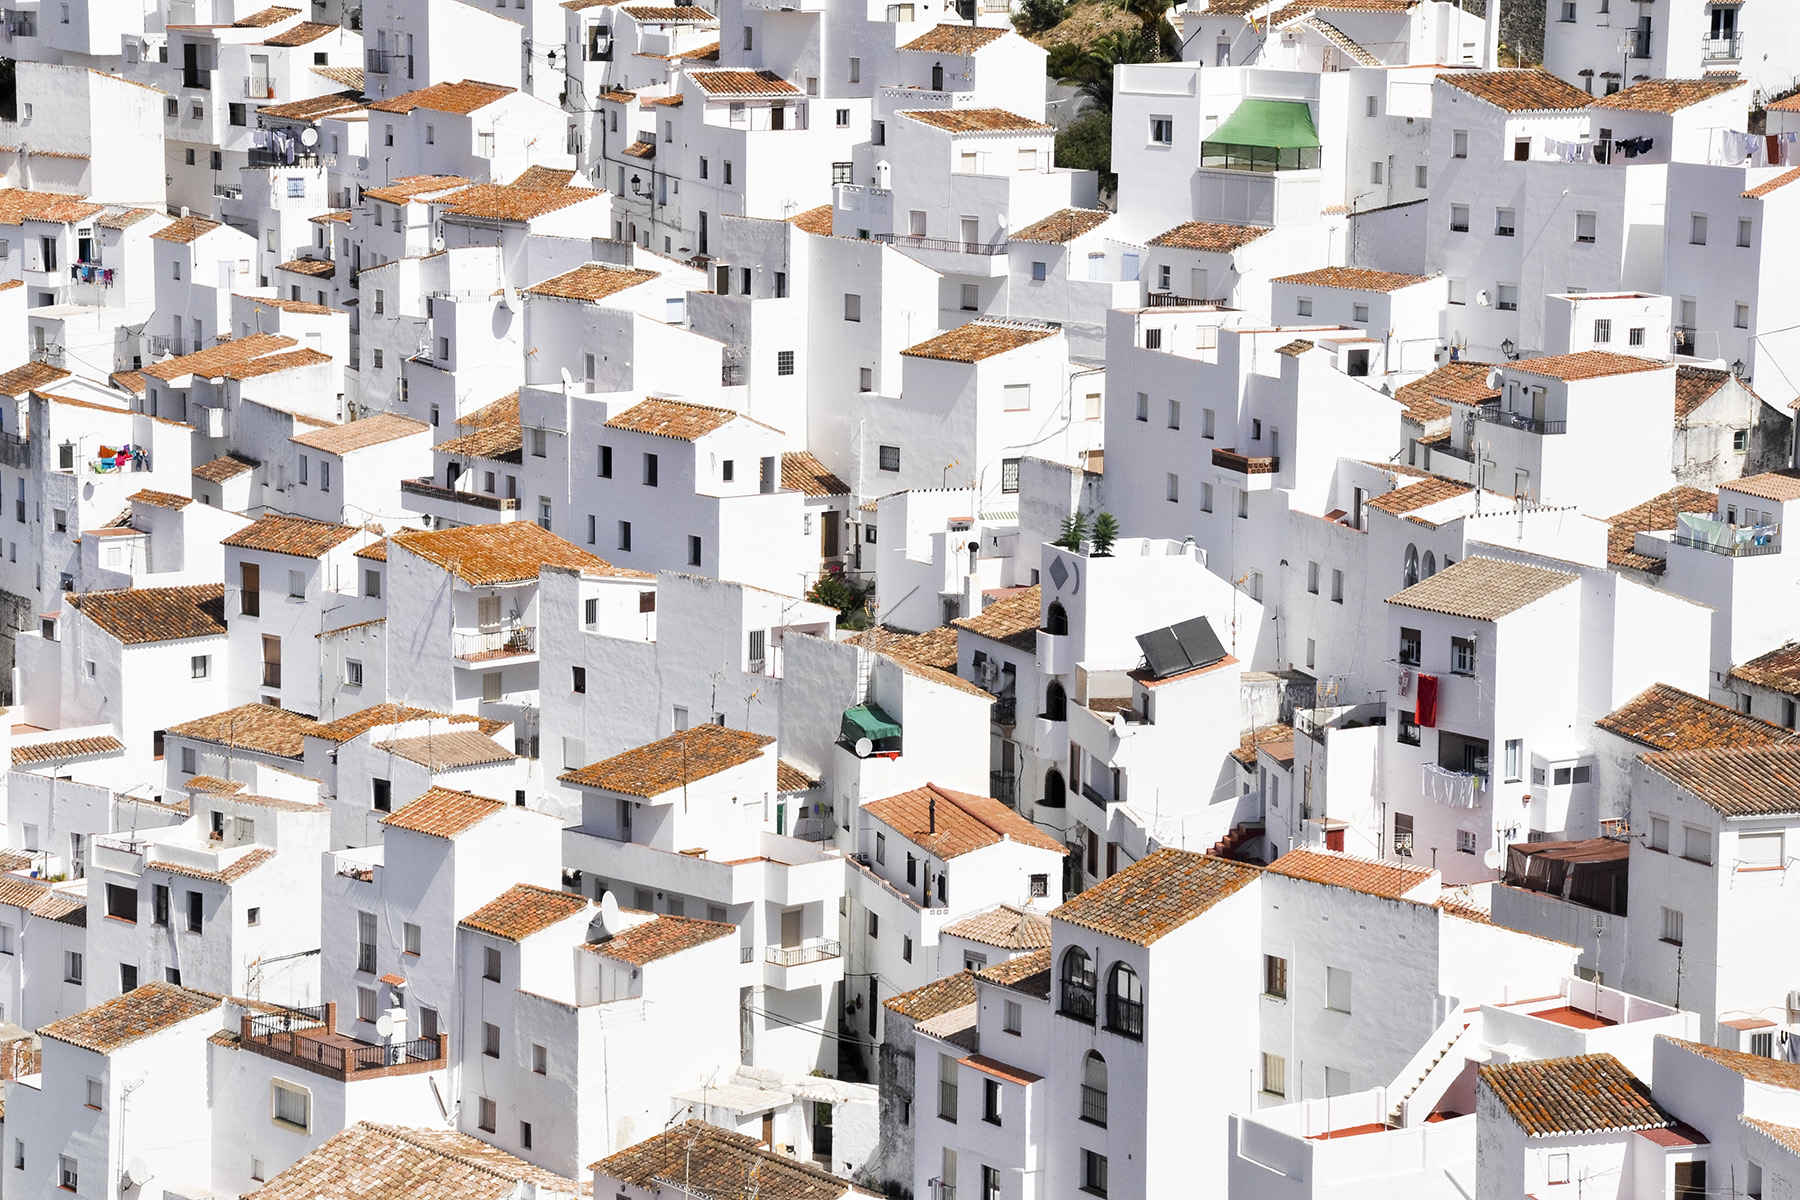 Houses in Casares, Spain